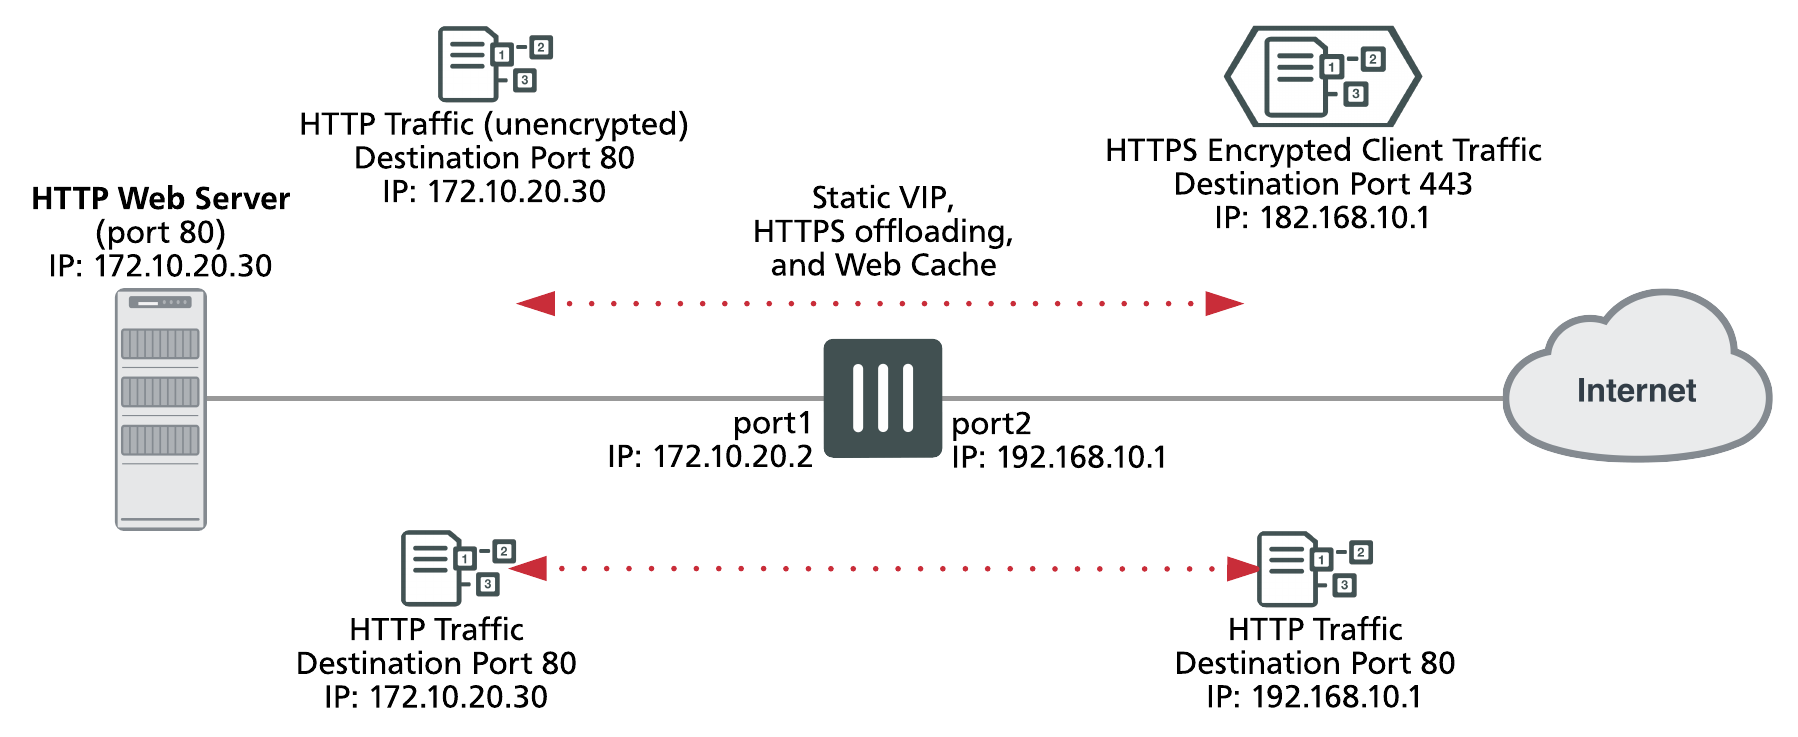 Web caching and SSL offloading